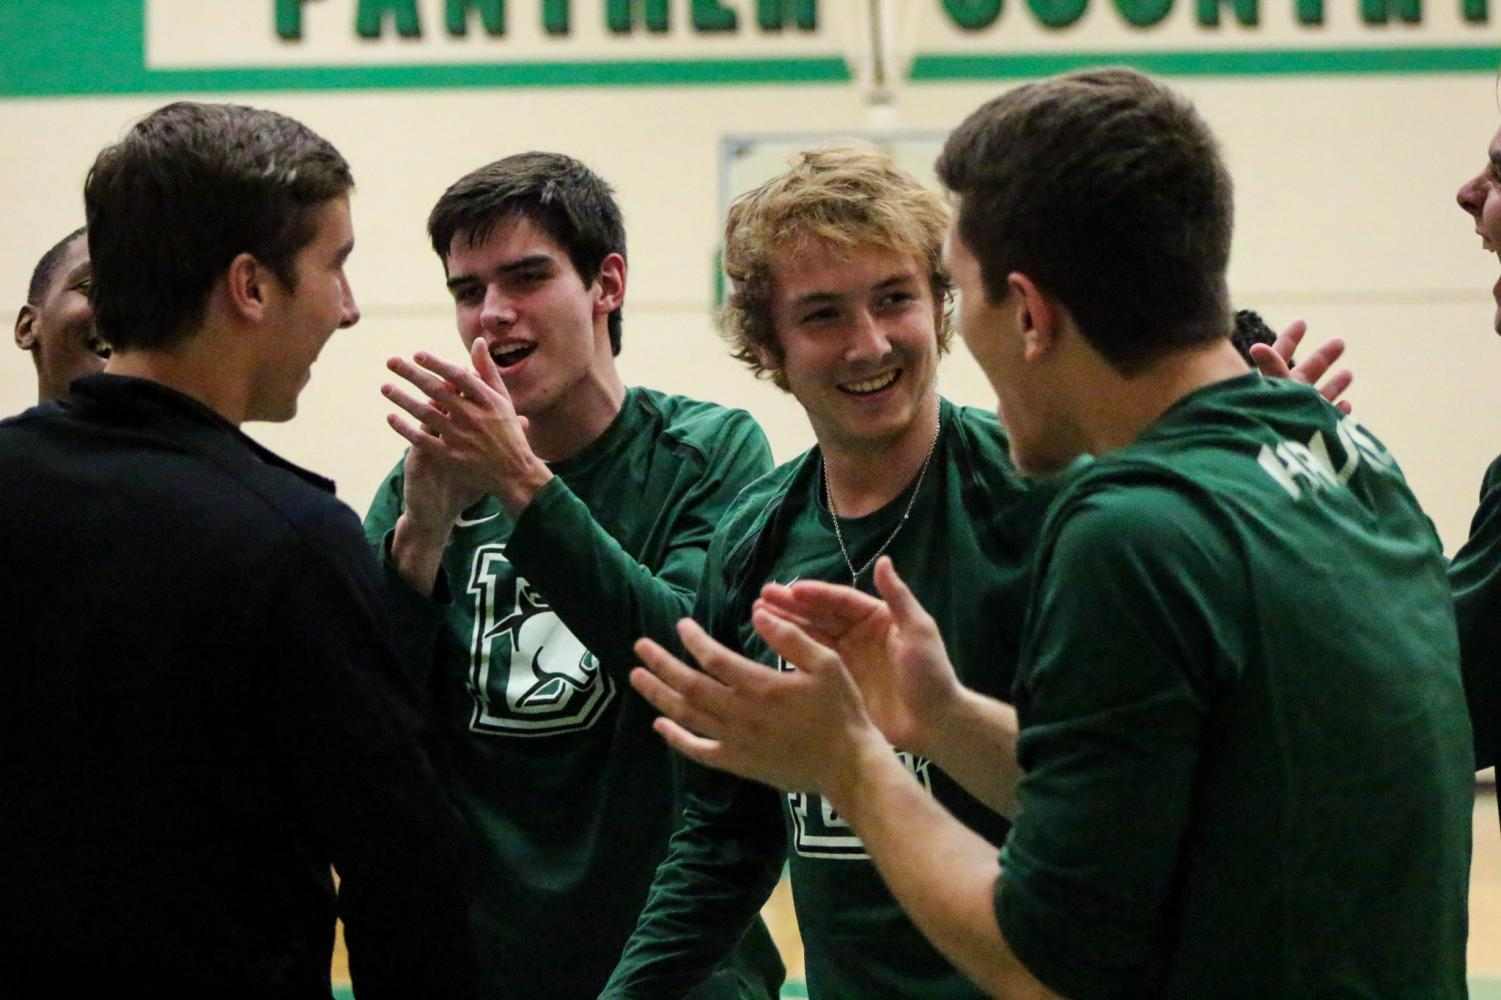 The boys basketball team laughs during their pregame warmup.